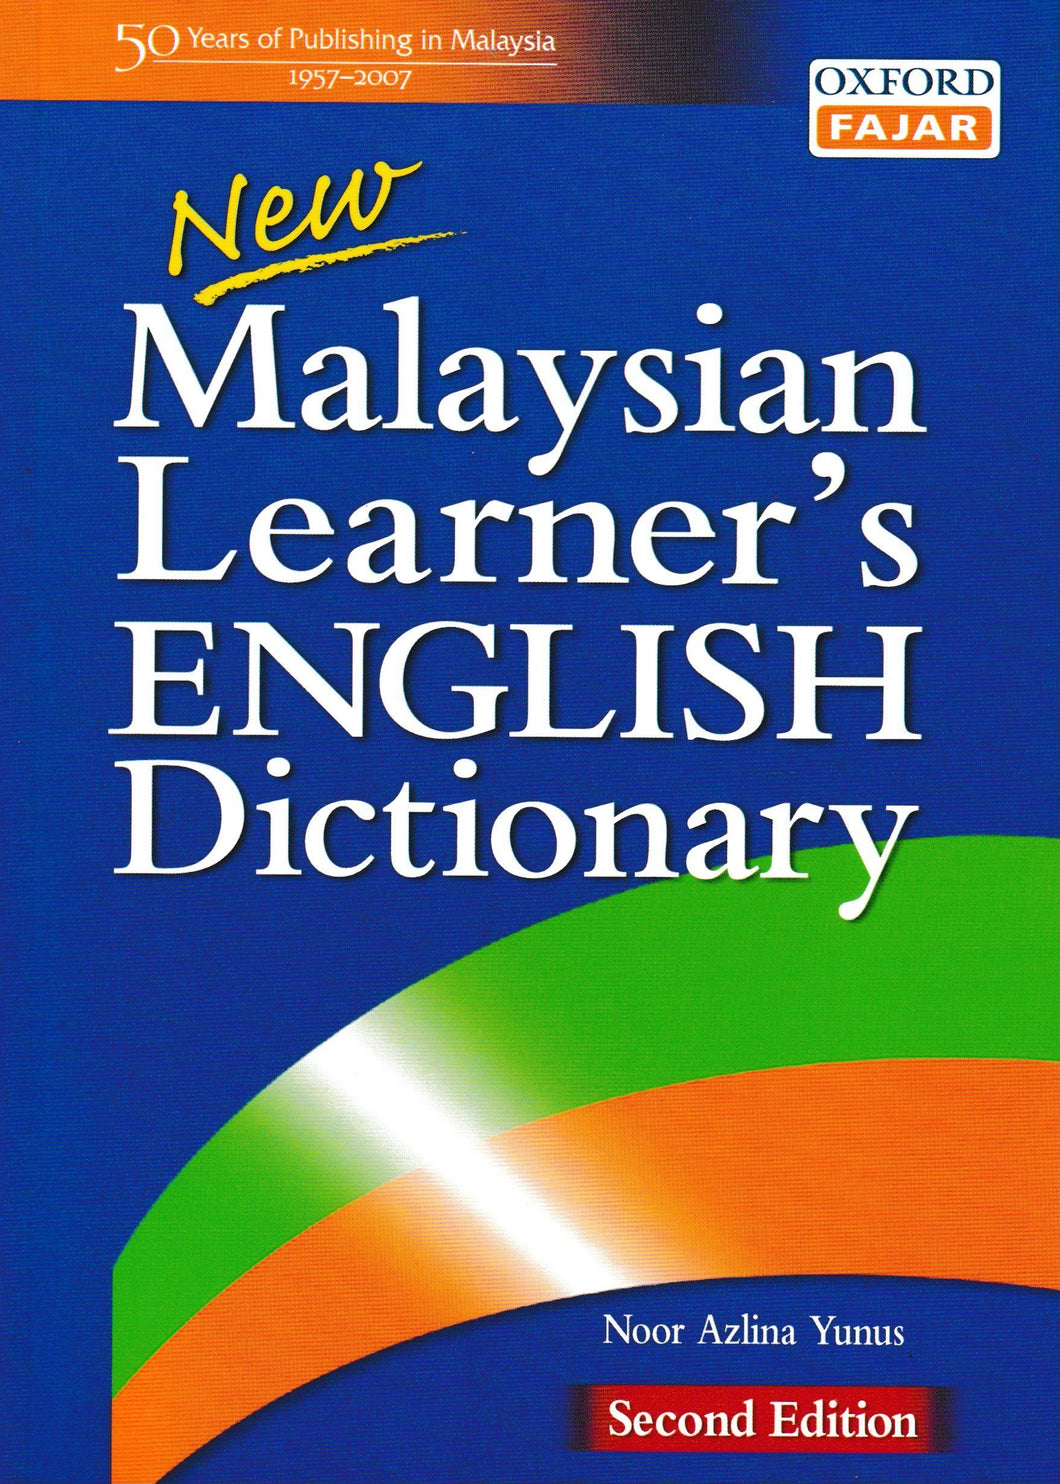 OxfordFajar: New Malaysian Learner's English - English Dictionary 2nd Edition